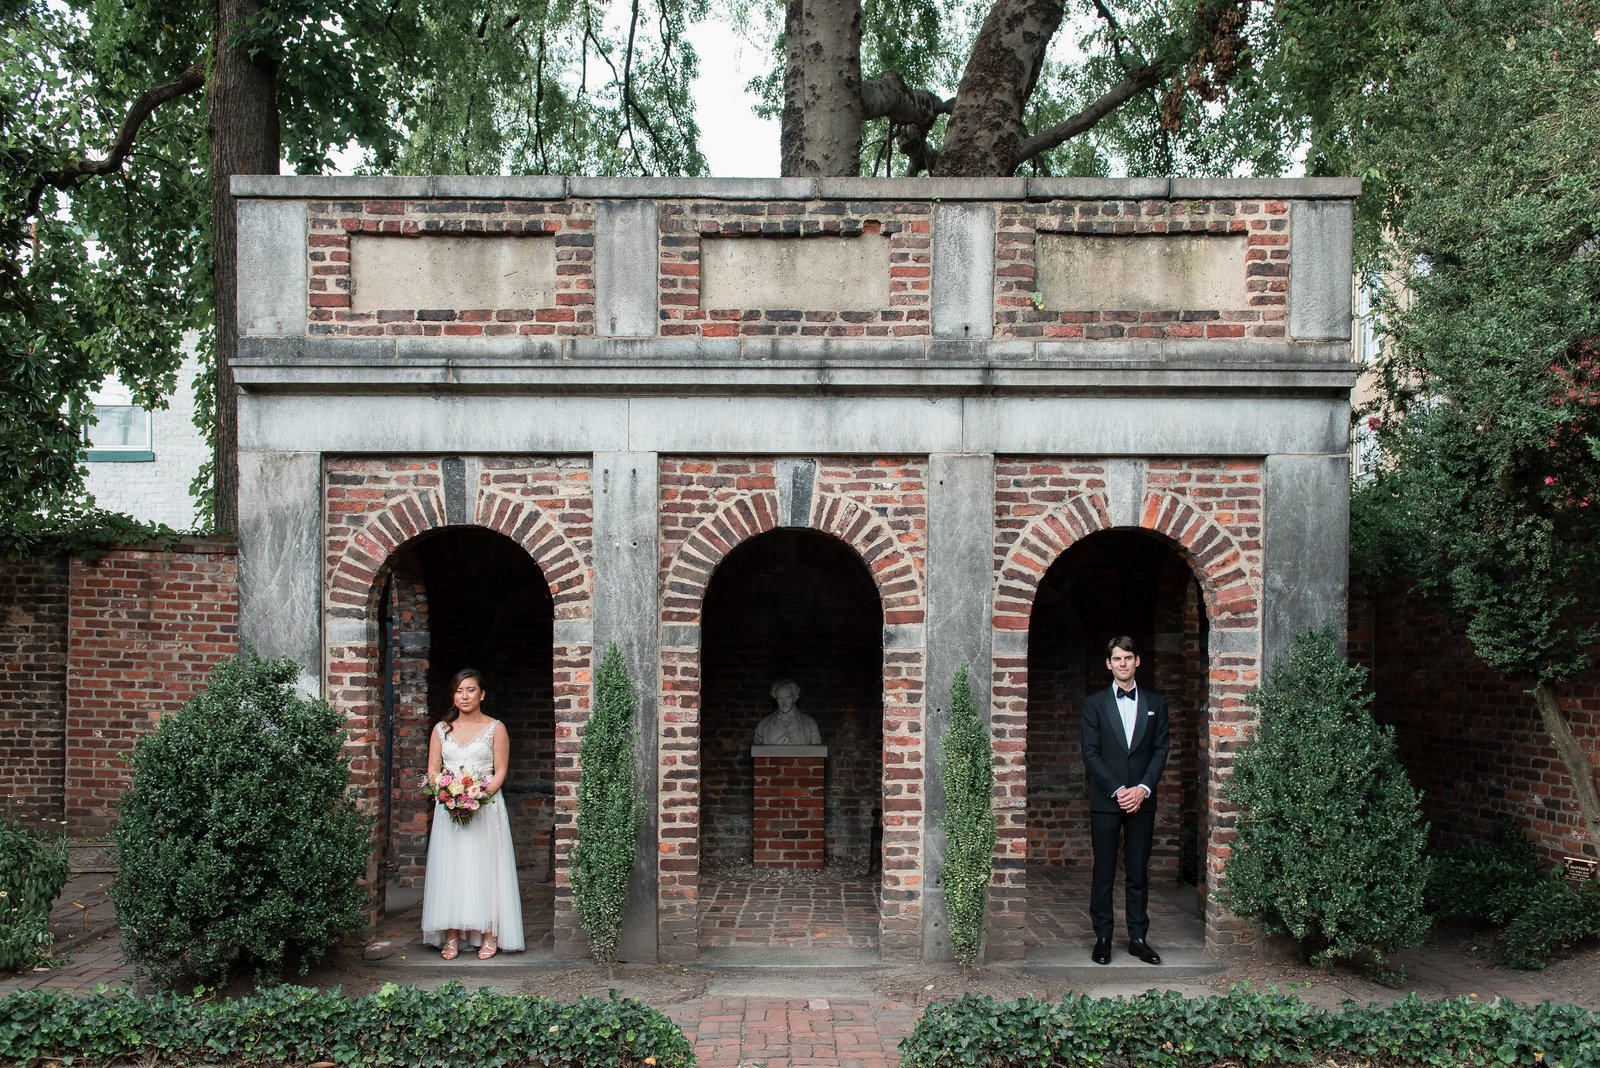 Christina-and-Ben-Poe-Museum-Wedding-Melissa-Desjardins-Photograpphy-4